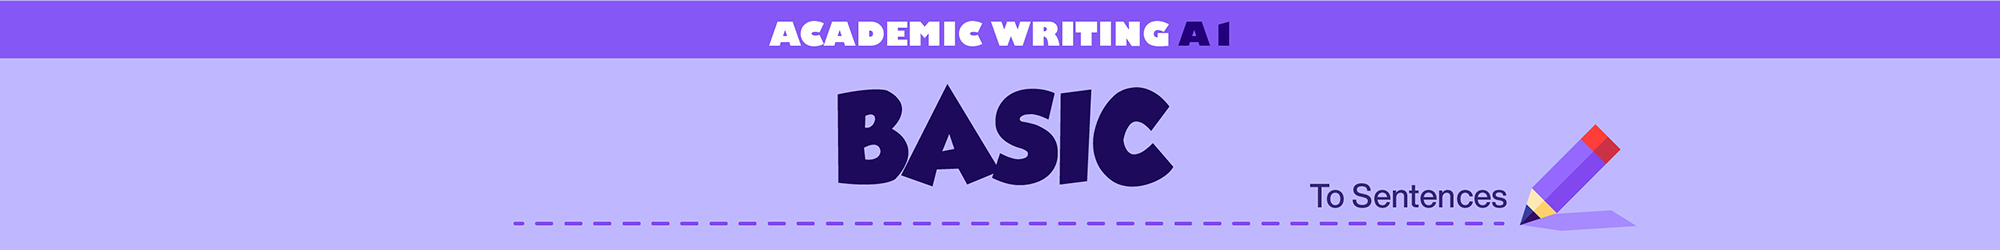 Academic Writing A1 (Basis) banner